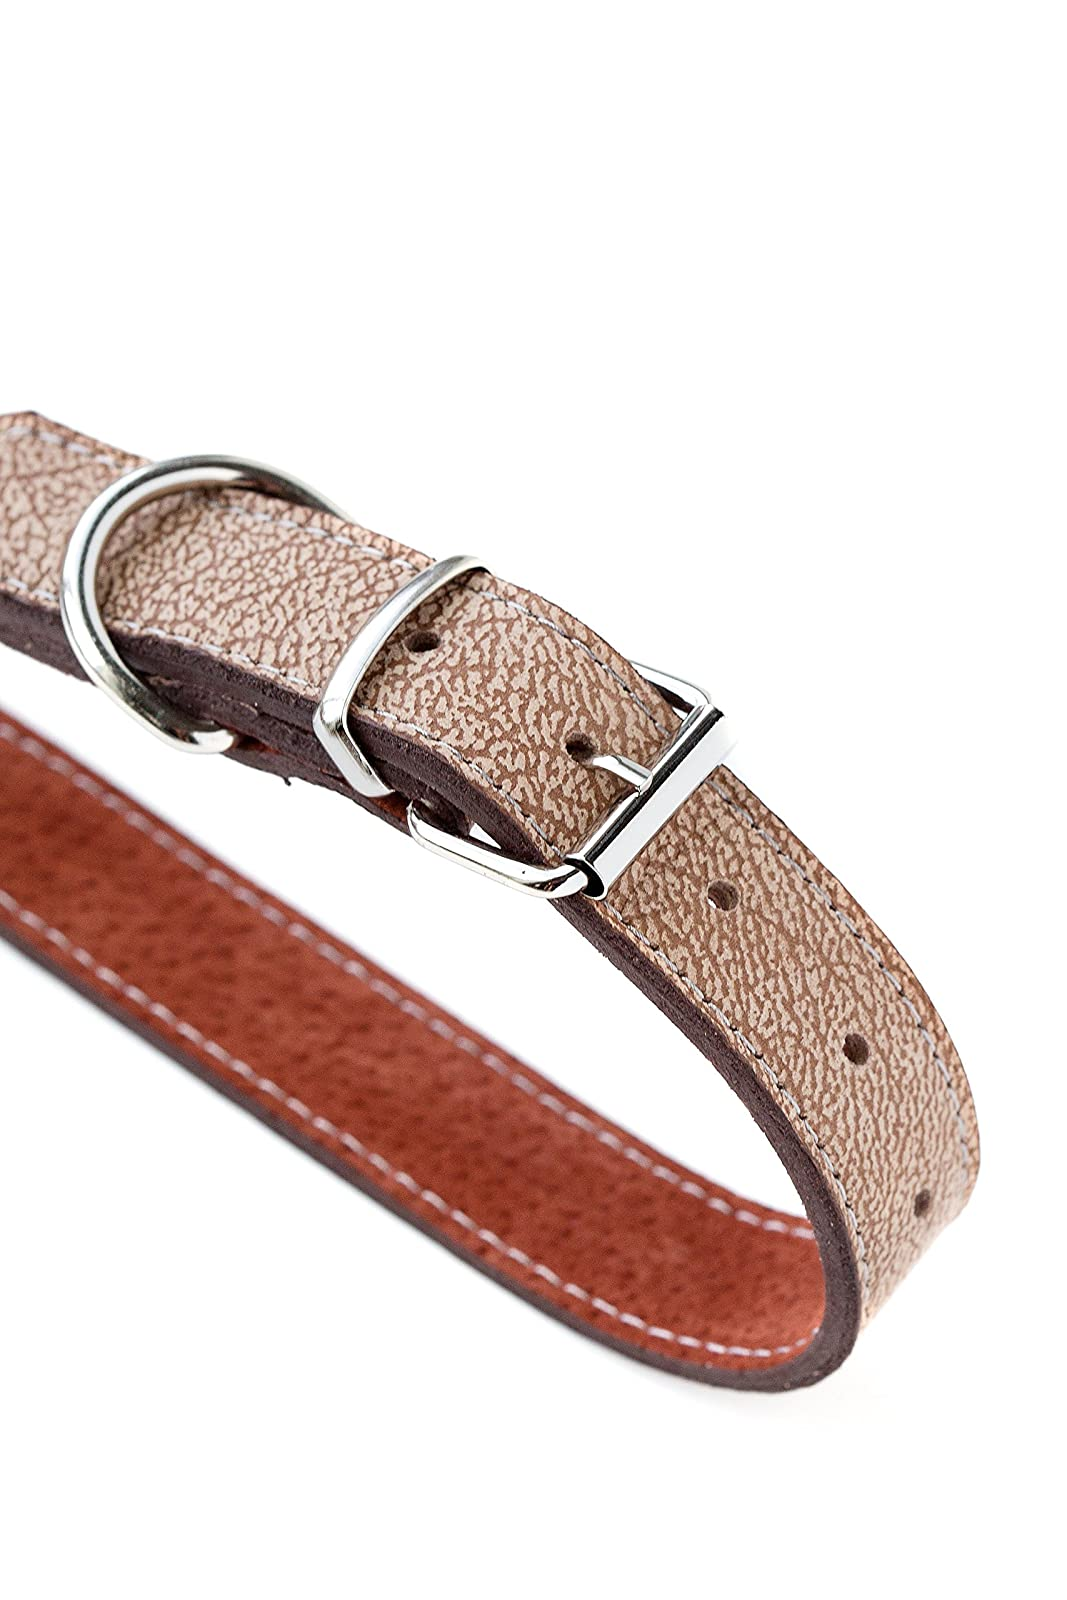 Mighty Paw Leather Dog Collar Super Soft Light Brown - 6